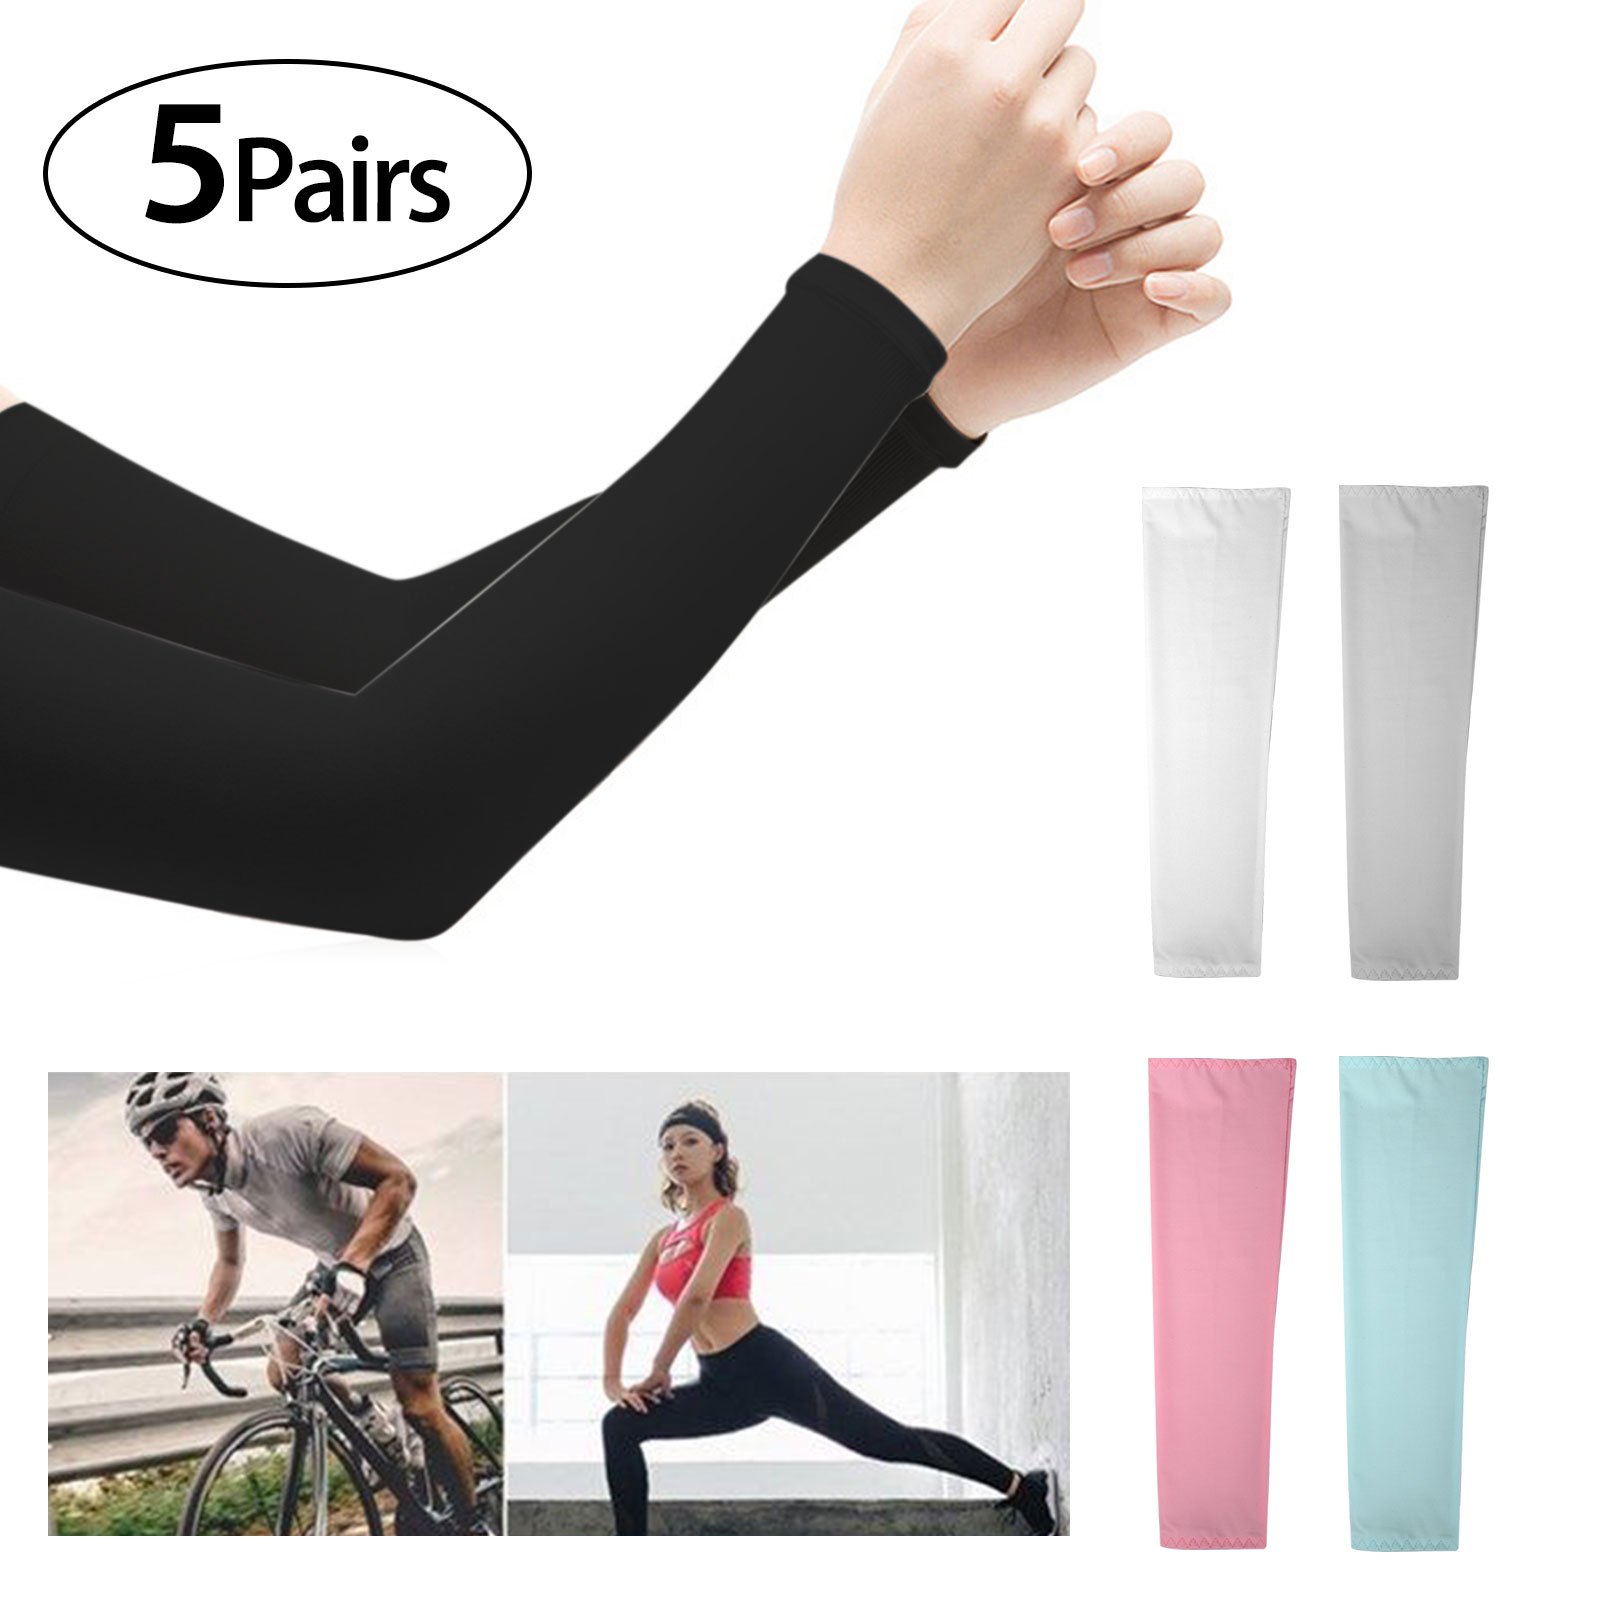 10 pieces 5 pairs Cooling Arm Sleeves Cover UV Sun Protection Basketball Sport